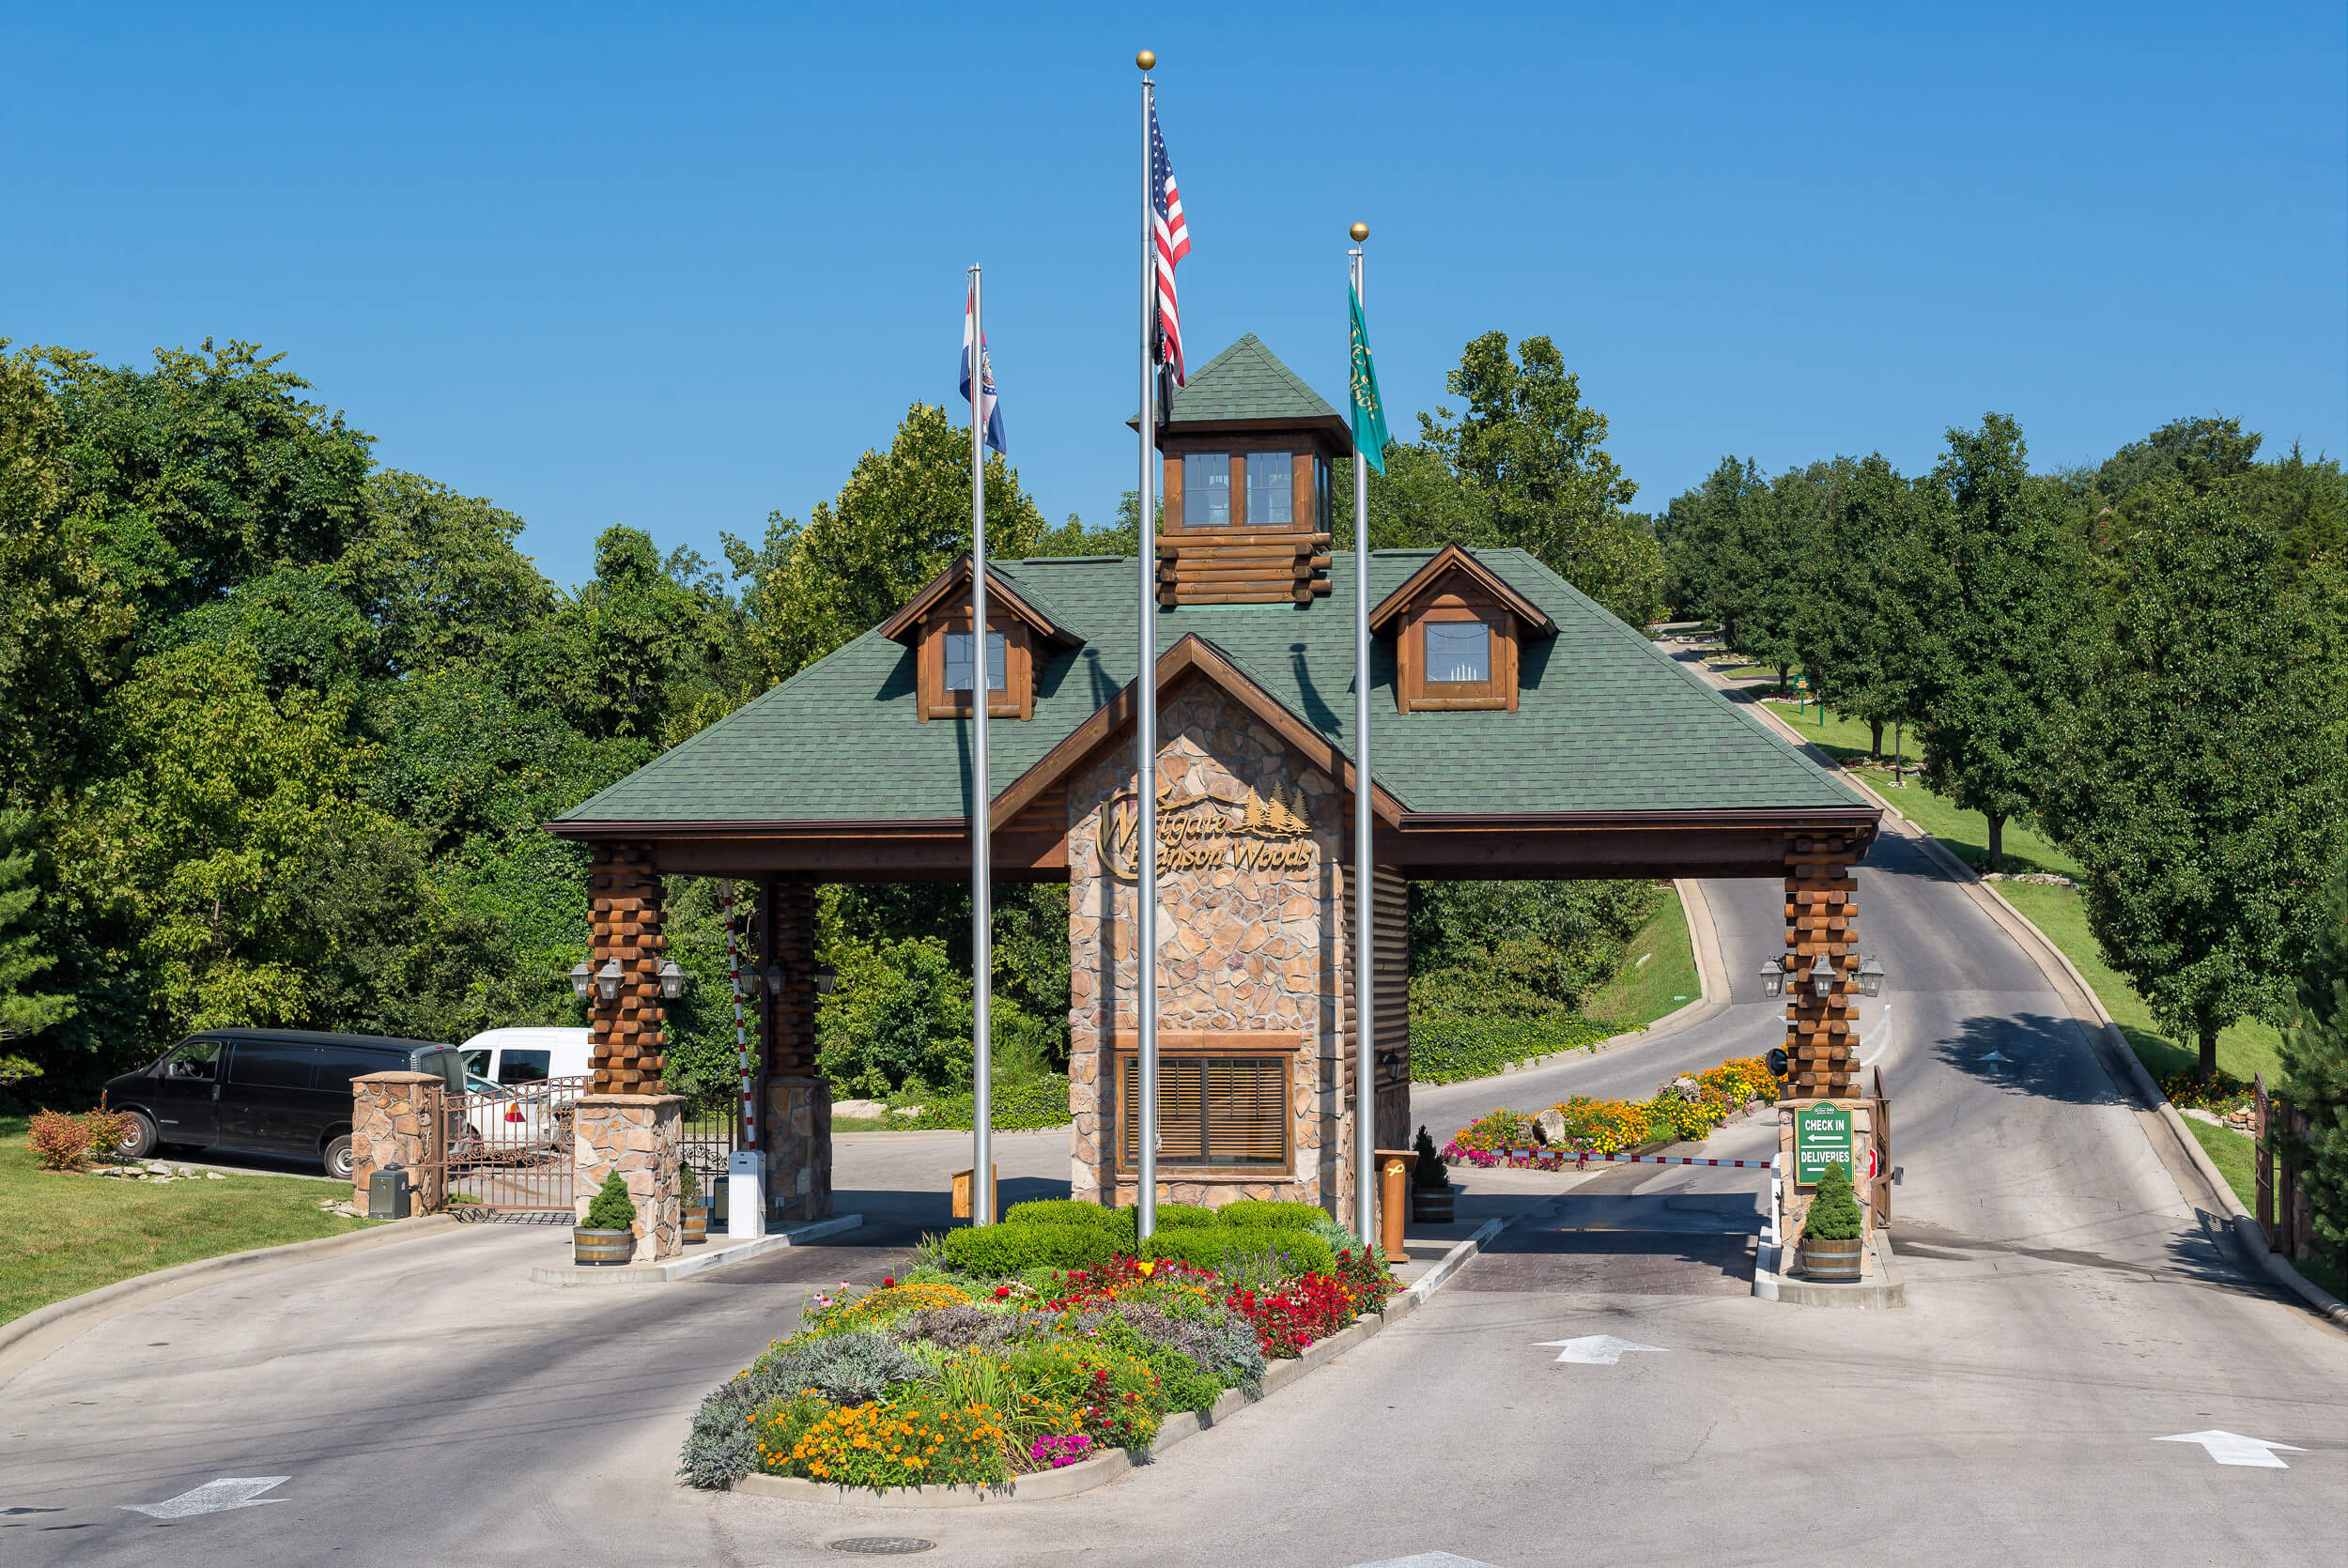 Main entrance to Branson resort | Westgate Branson Woods Resort